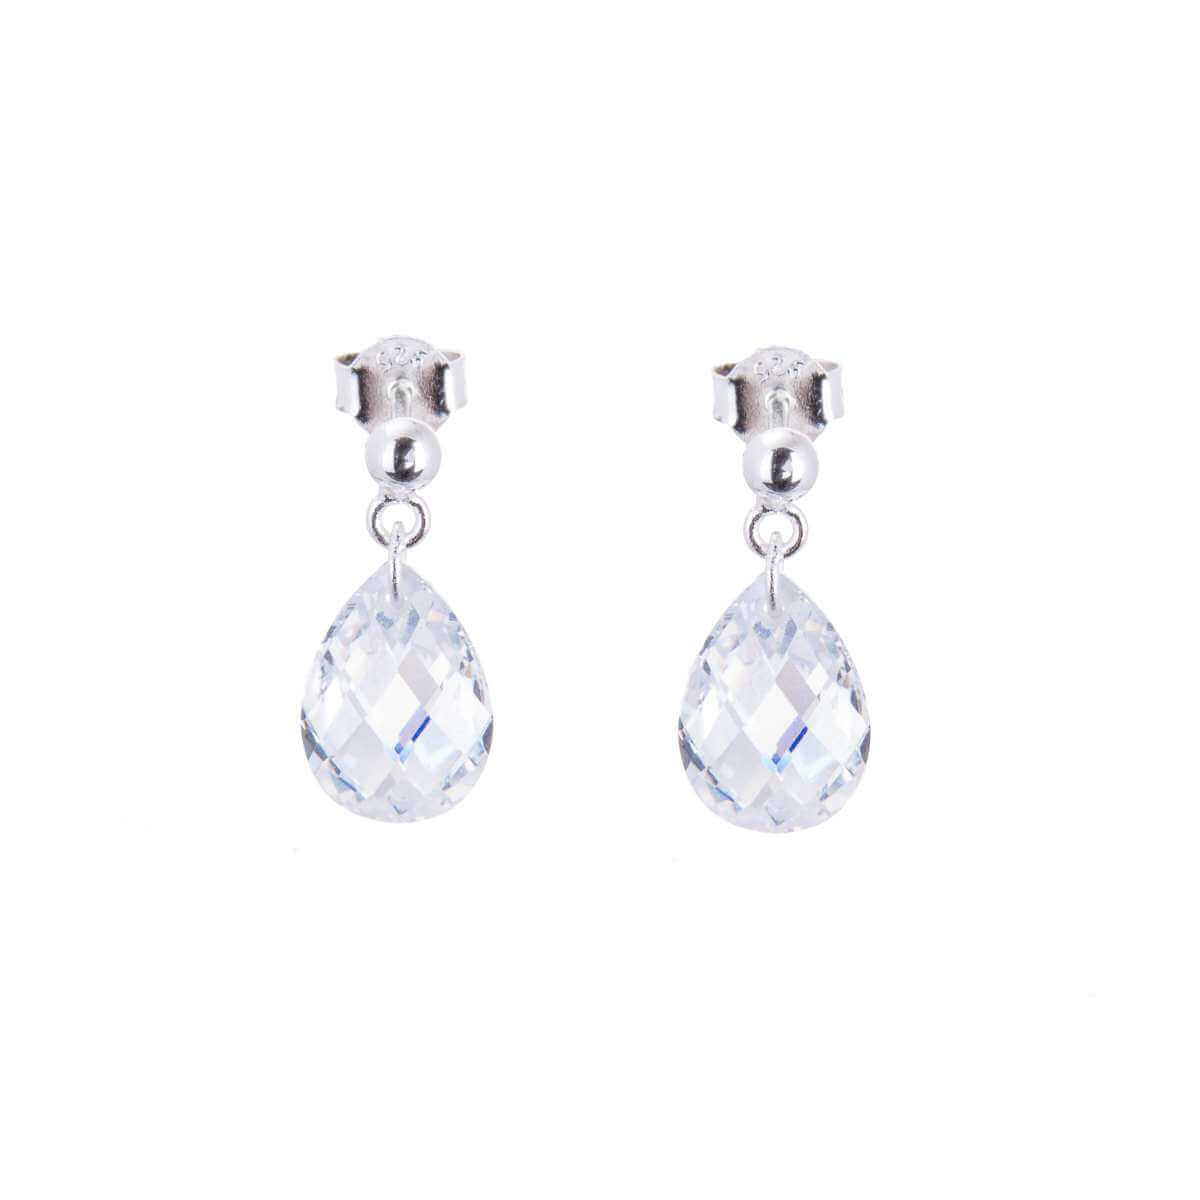 863ca0fe3 Sterling Silver & Faceted Pear Drop CZ Crystal Stud Earrings